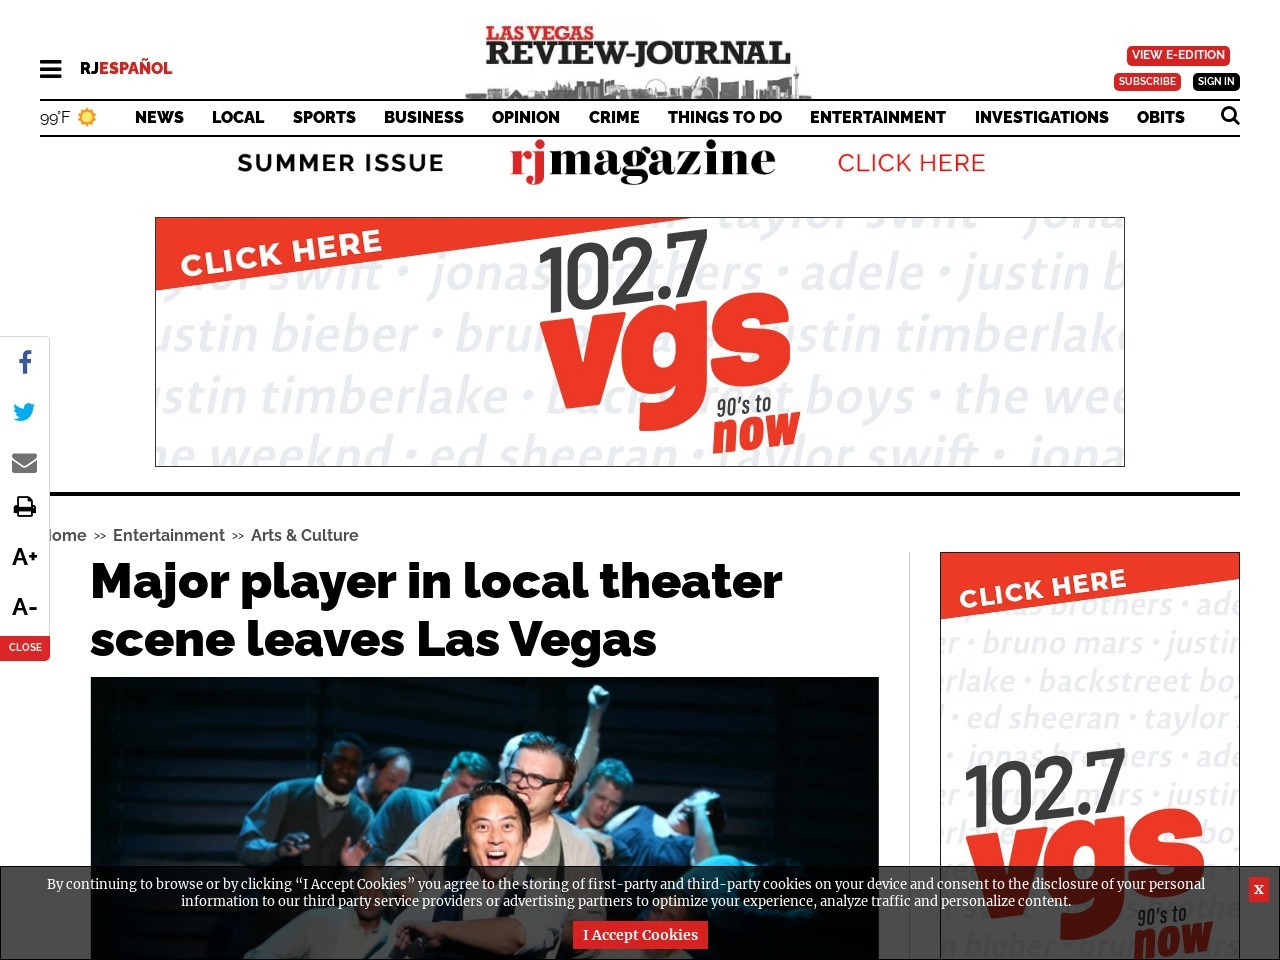 Major player in local theater scene leaves Las Vegas